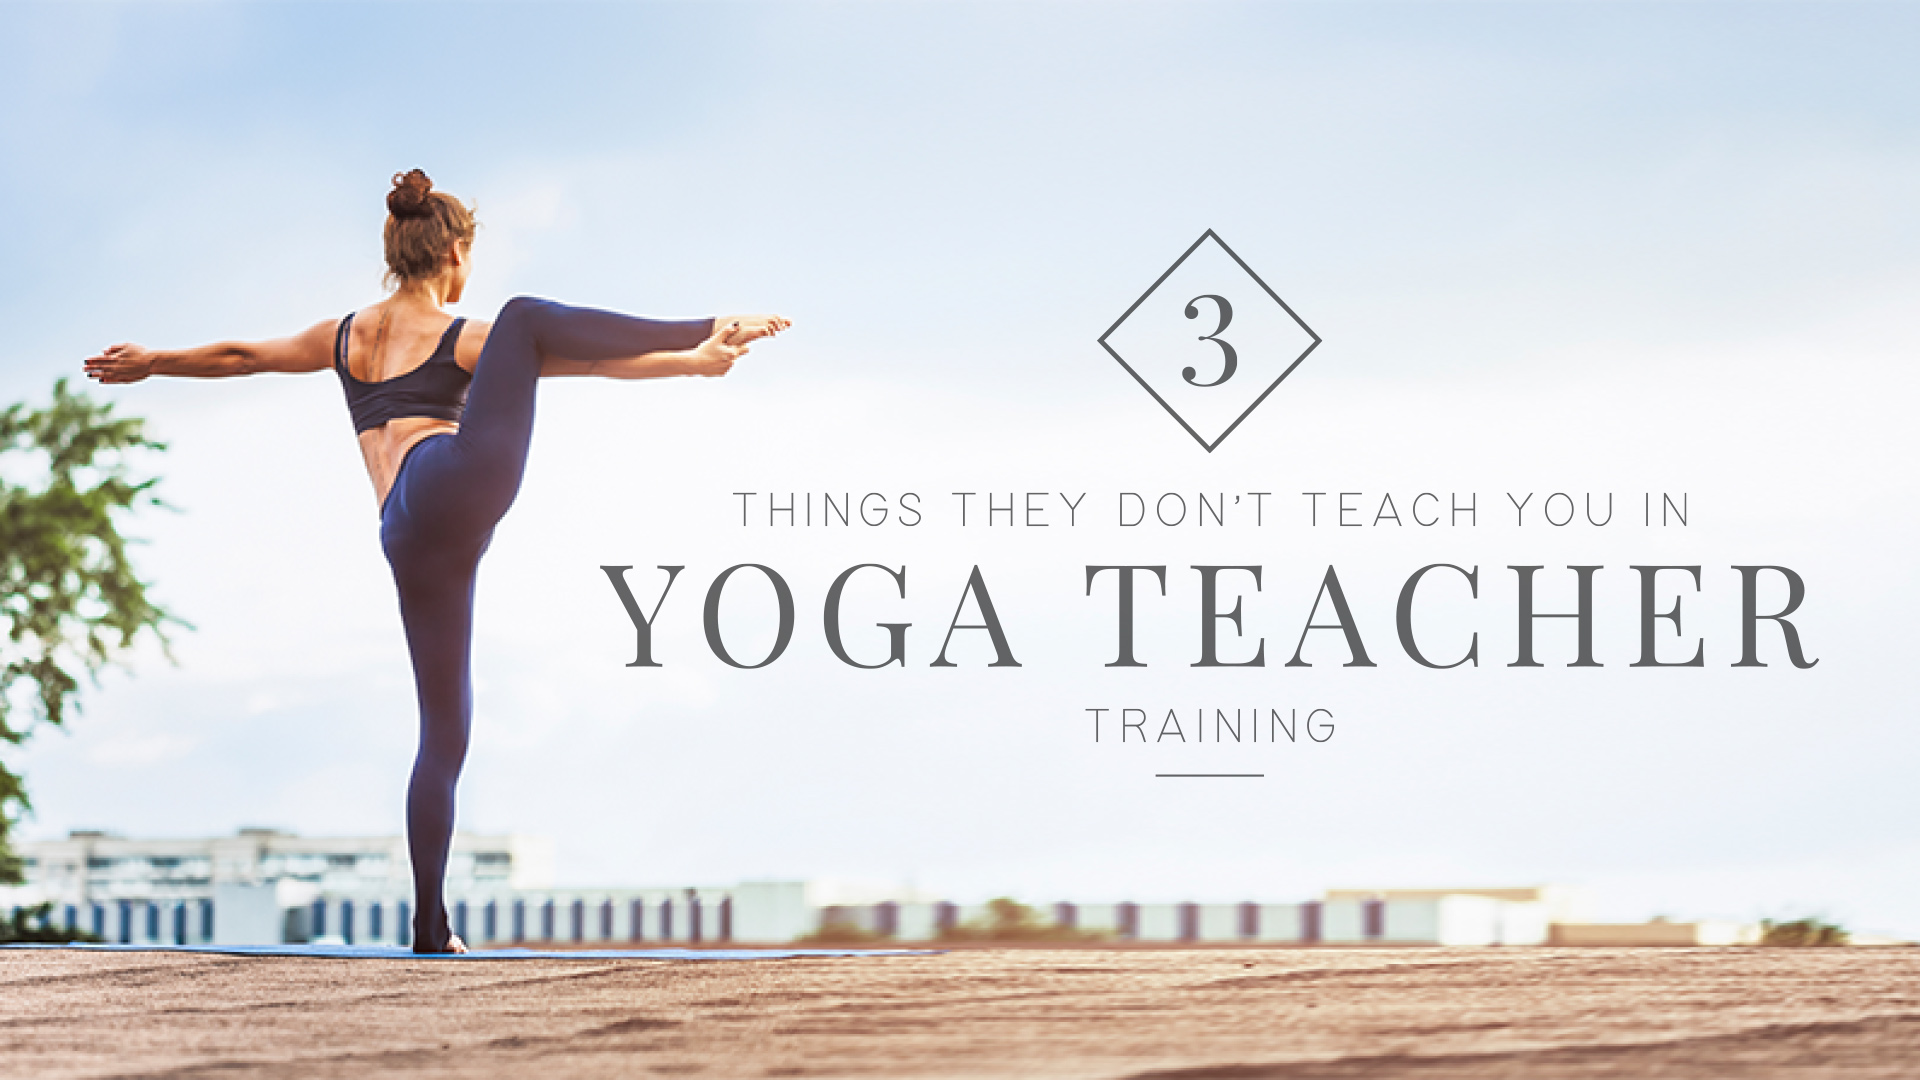 3 Things They Don't Teach You at Yoga Teacher Training